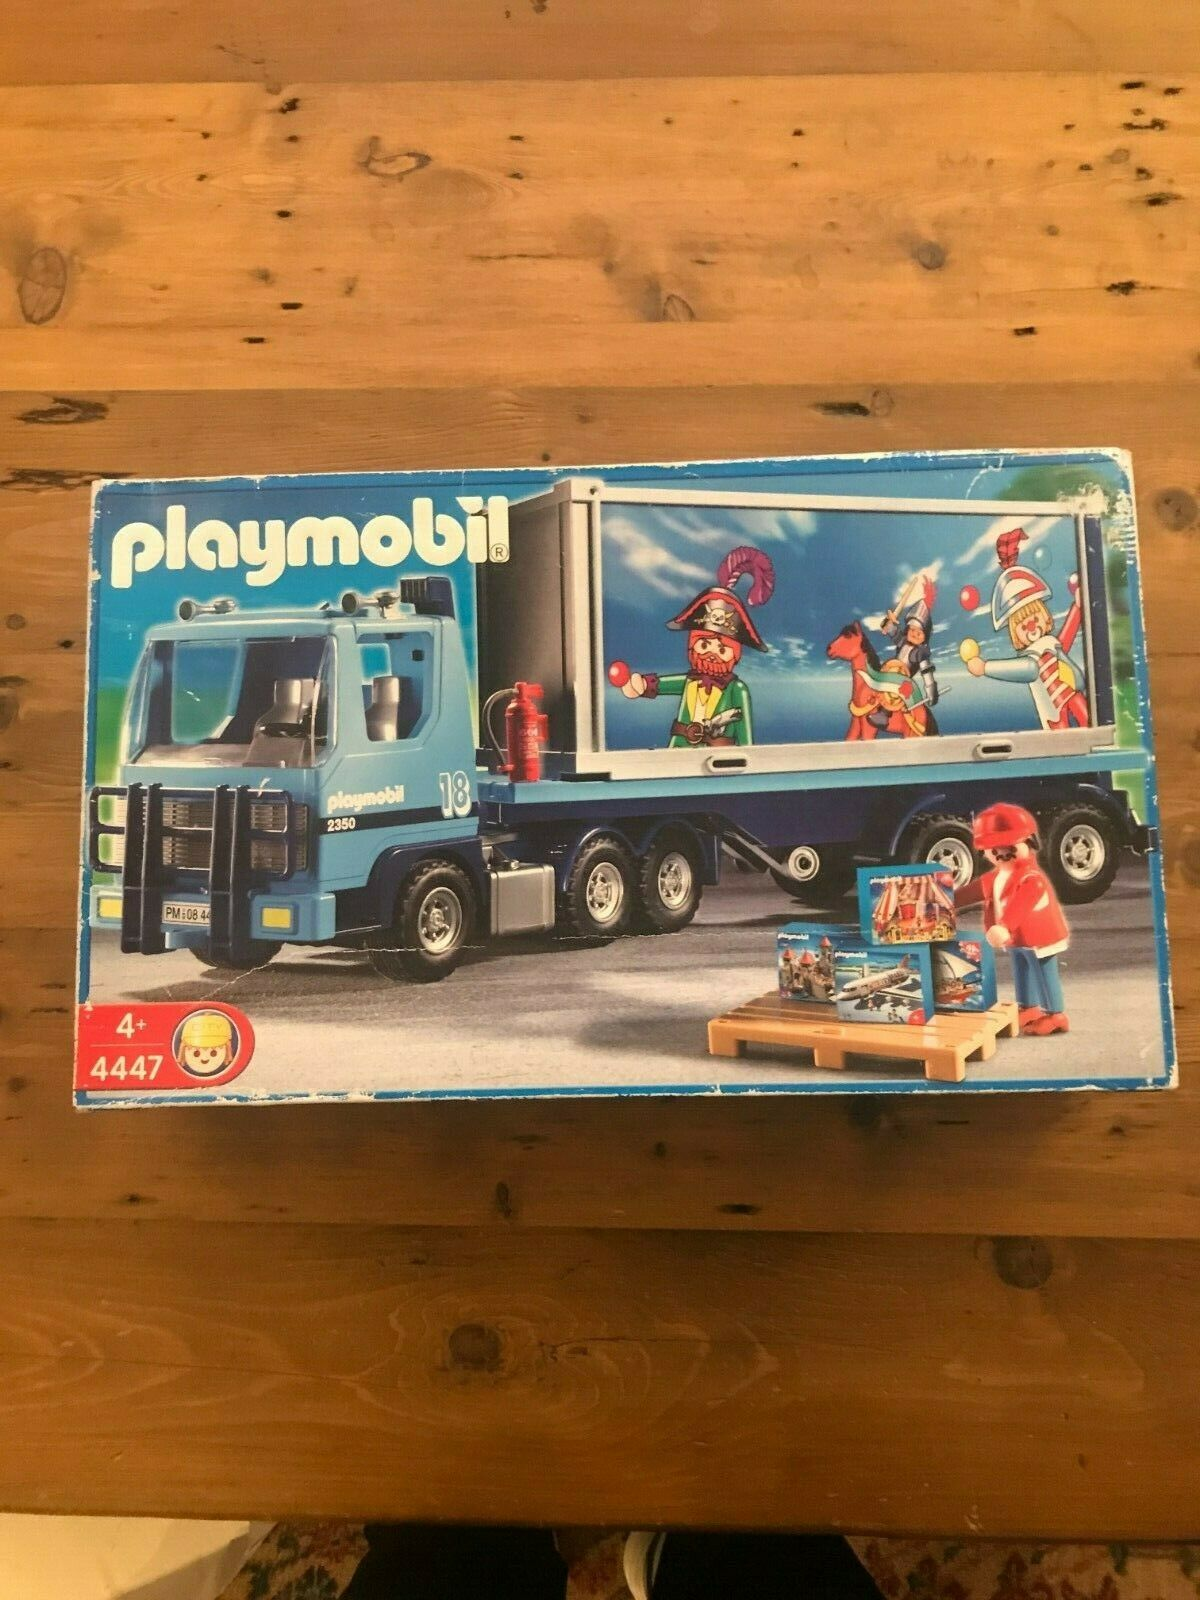 Playmobil 4447 - Container Truck New But Scuffed Box